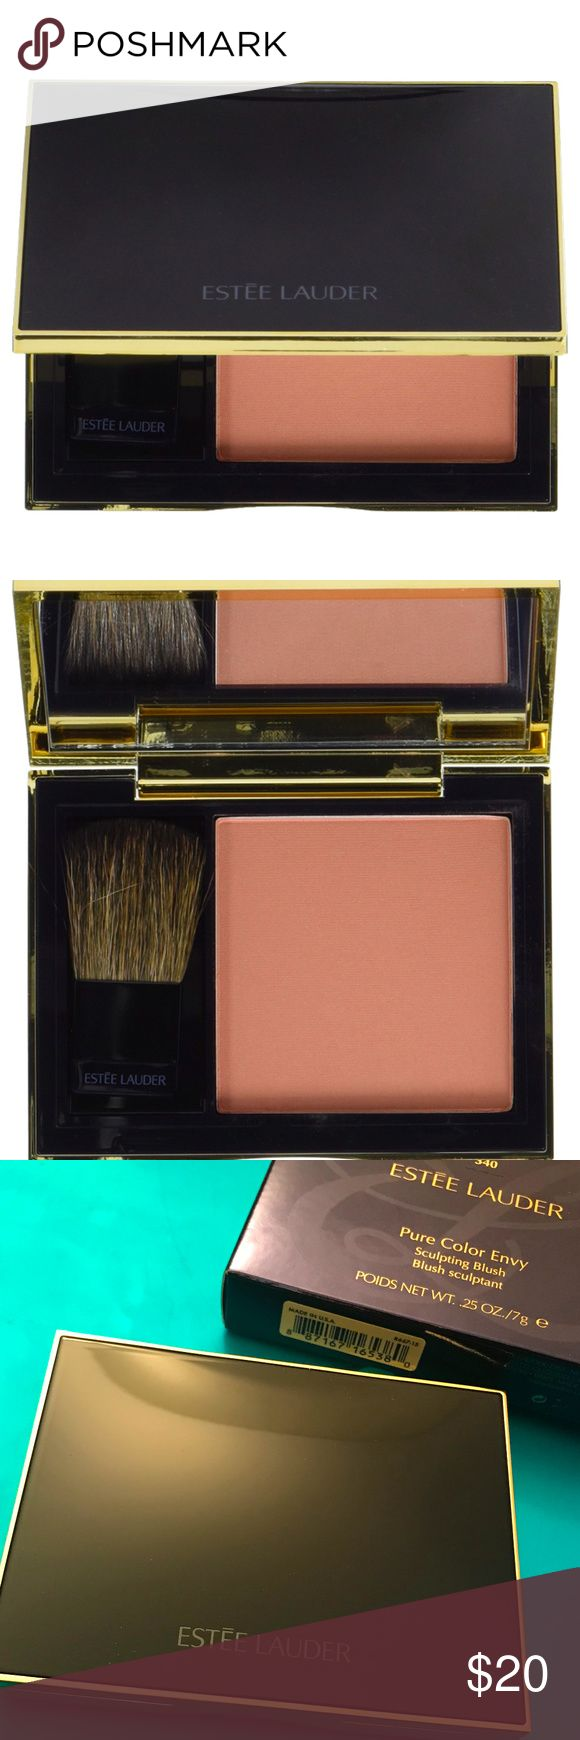 Pure Color Envy Sculpting Blush [New Full Size][Boutique] Estee Lauder Pure Color Envy Sculpting Blush [Shade: 340 Blushing Nude]. Sculpt. Define. Glow. Sweep on this ultra-silky, luxurious powder for enhanced definition and a healthy-looking glow. Brush included. Estee Lauder Makeup Blush